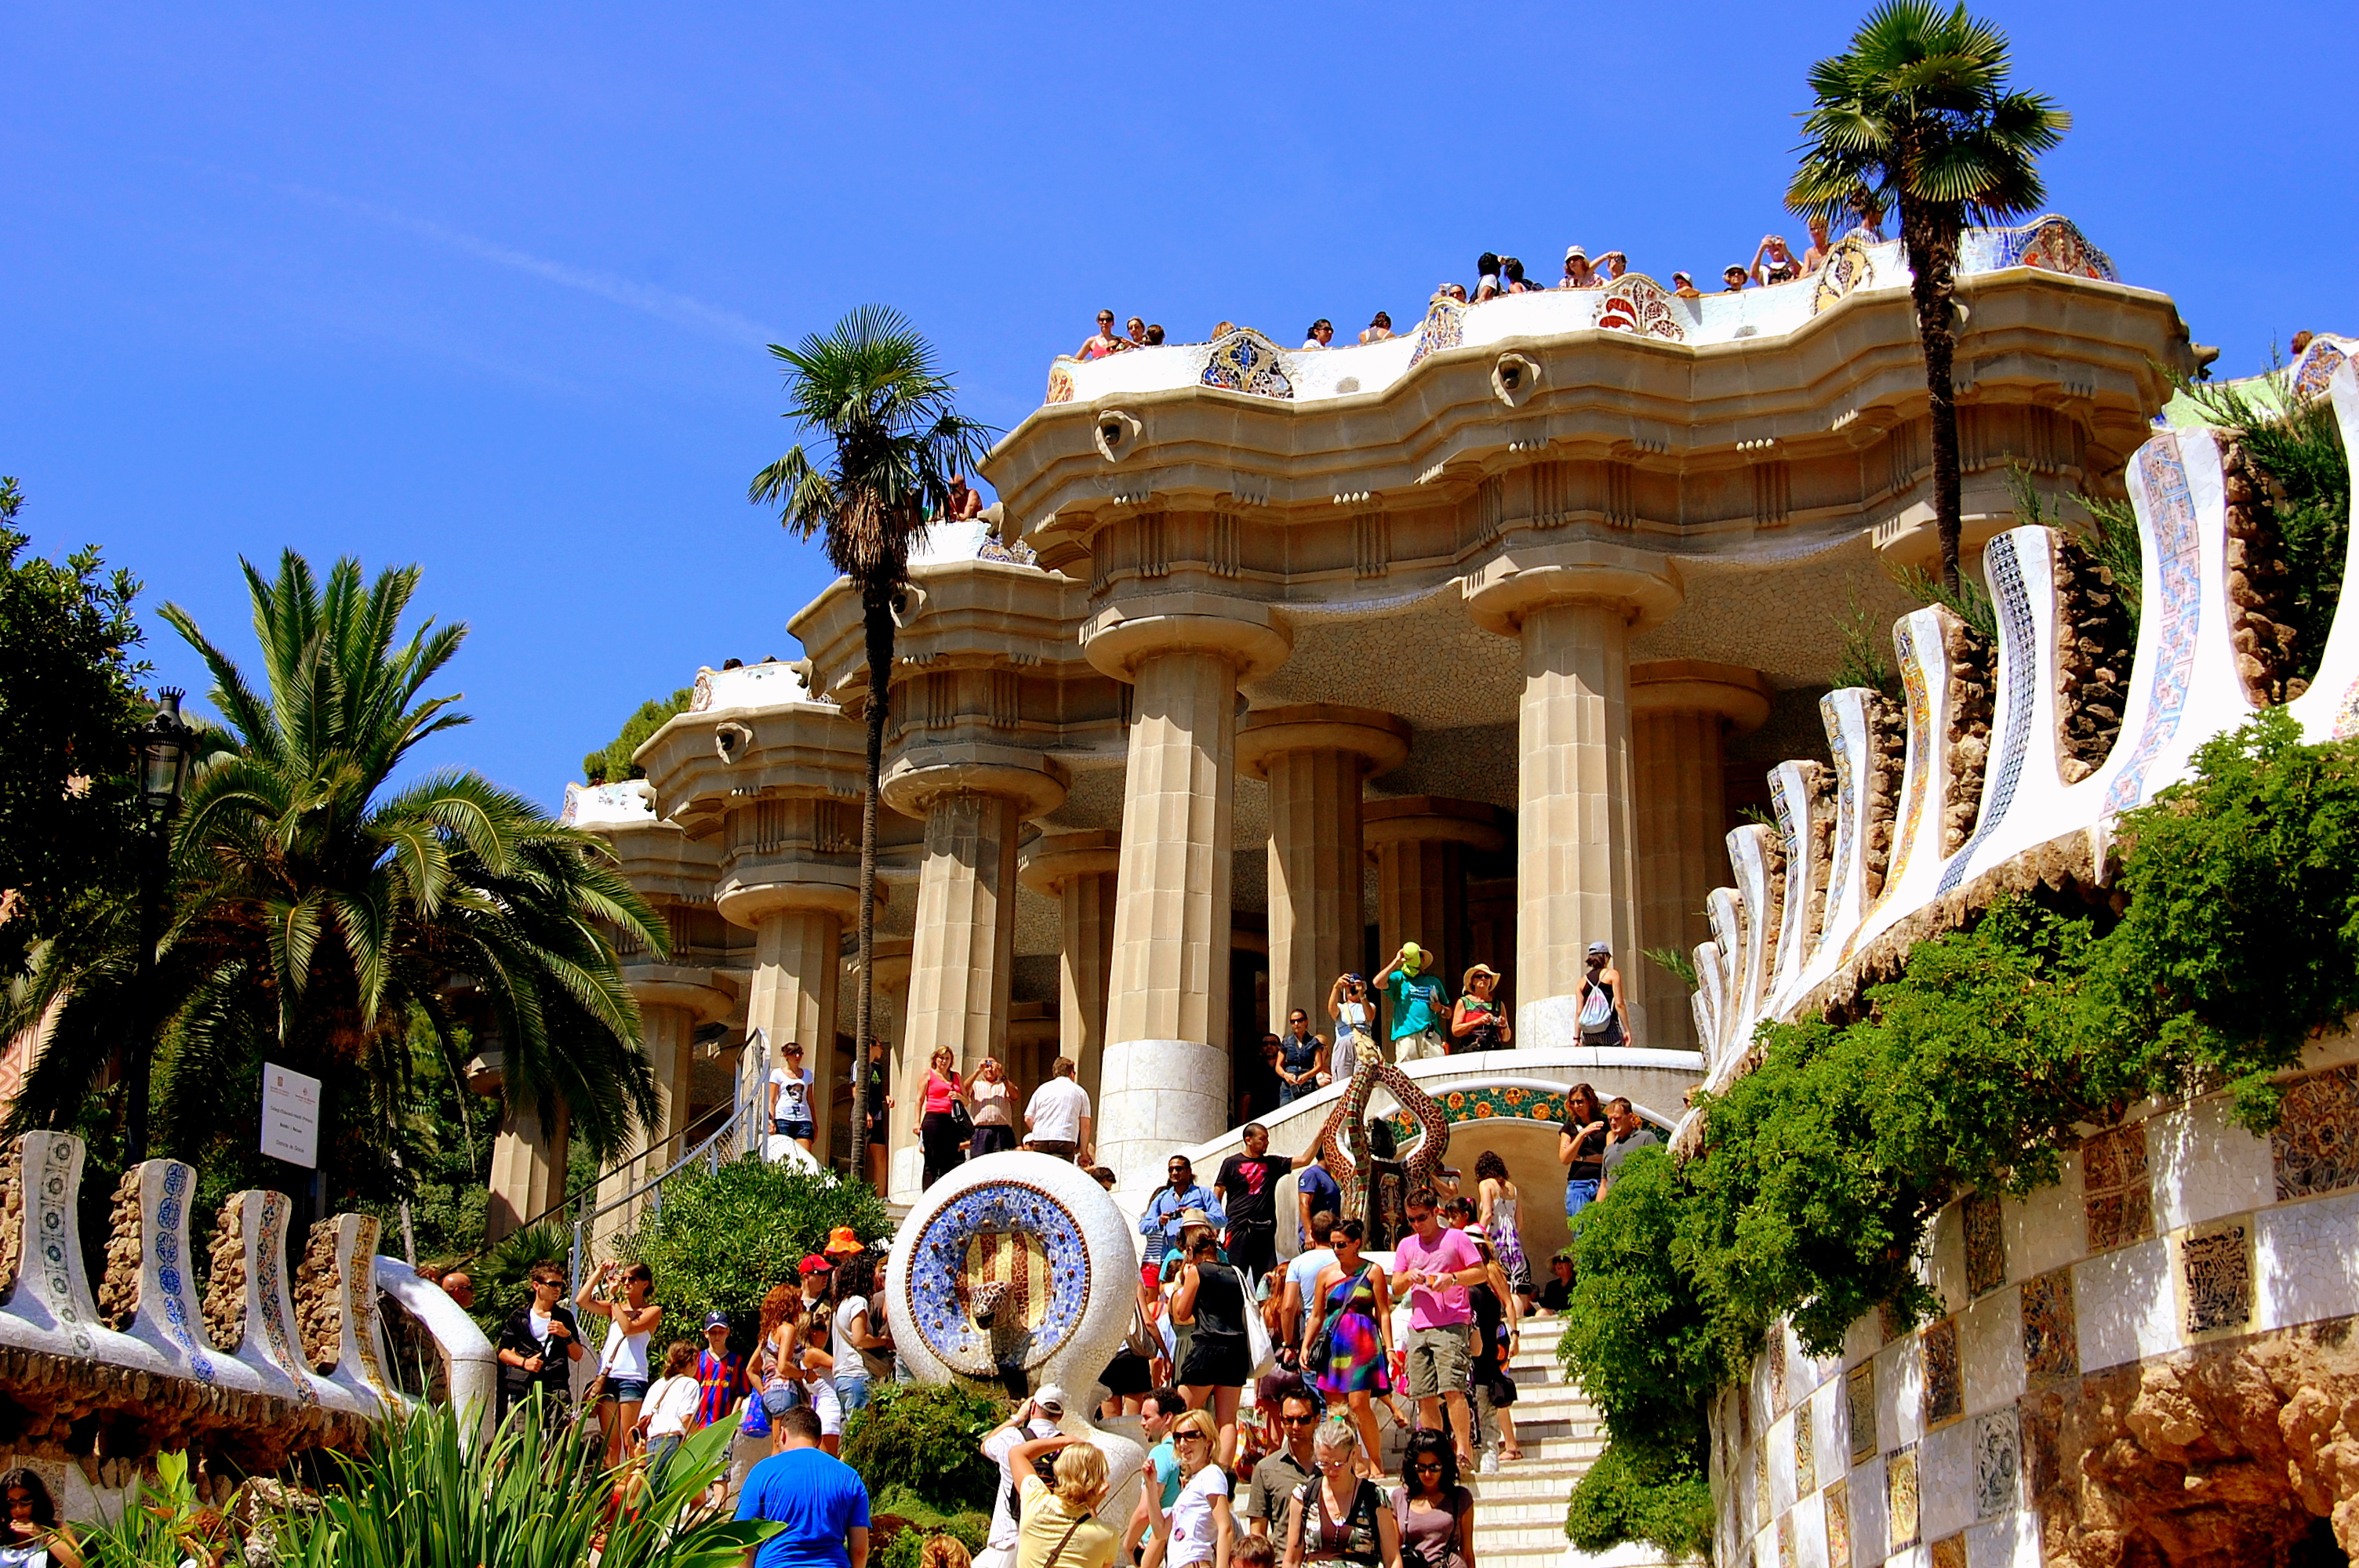 A view of Barcelona's Parc Guell